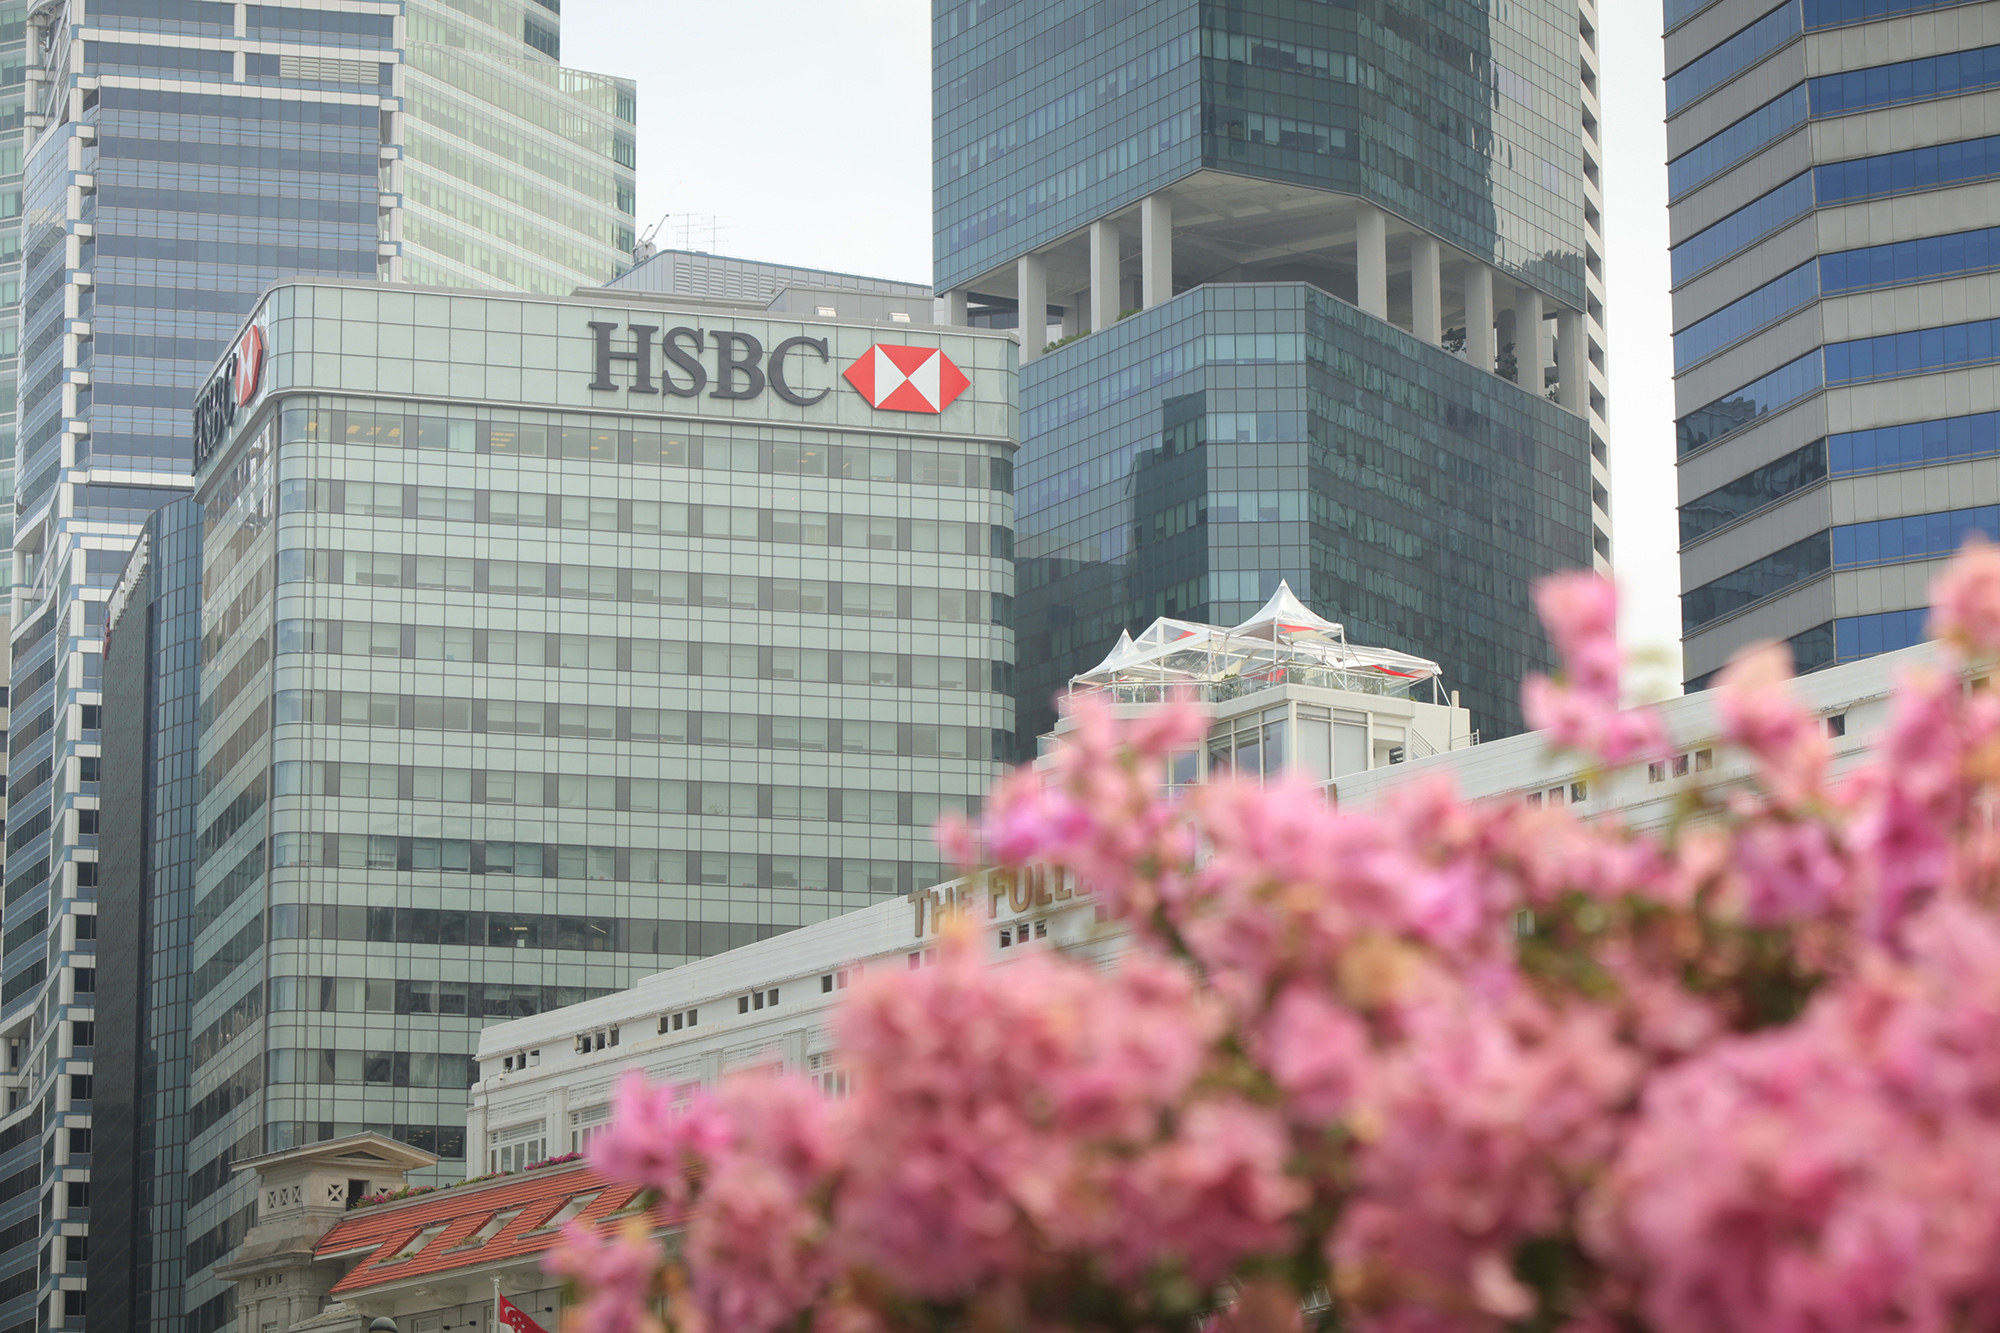 HSBC Singapore Building (HSBC Group)